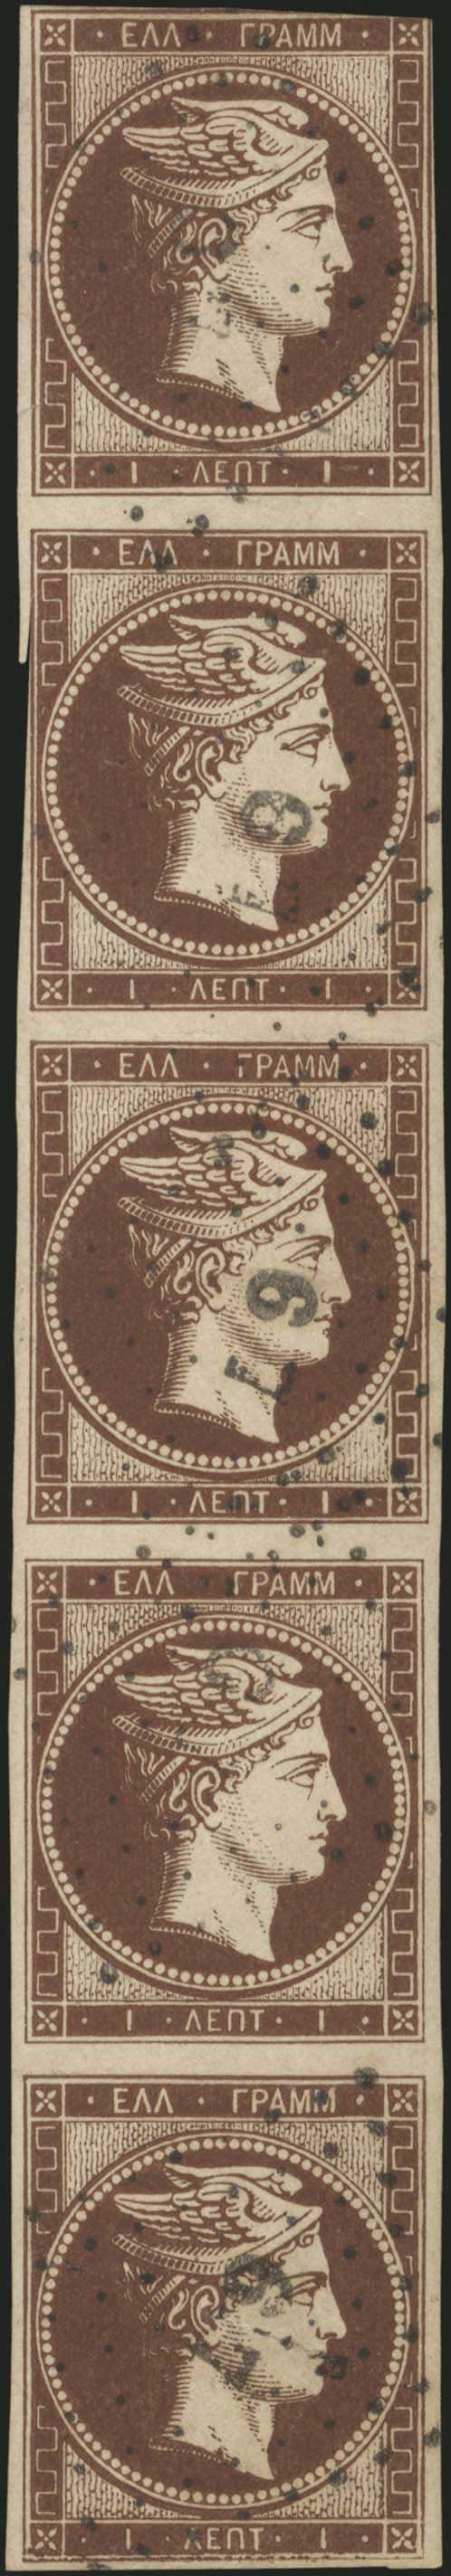 Lot 8 - -  LARGE HERMES HEAD 1861 paris print -  A. Karamitsos Public Auction 668 General Philatelic Auction